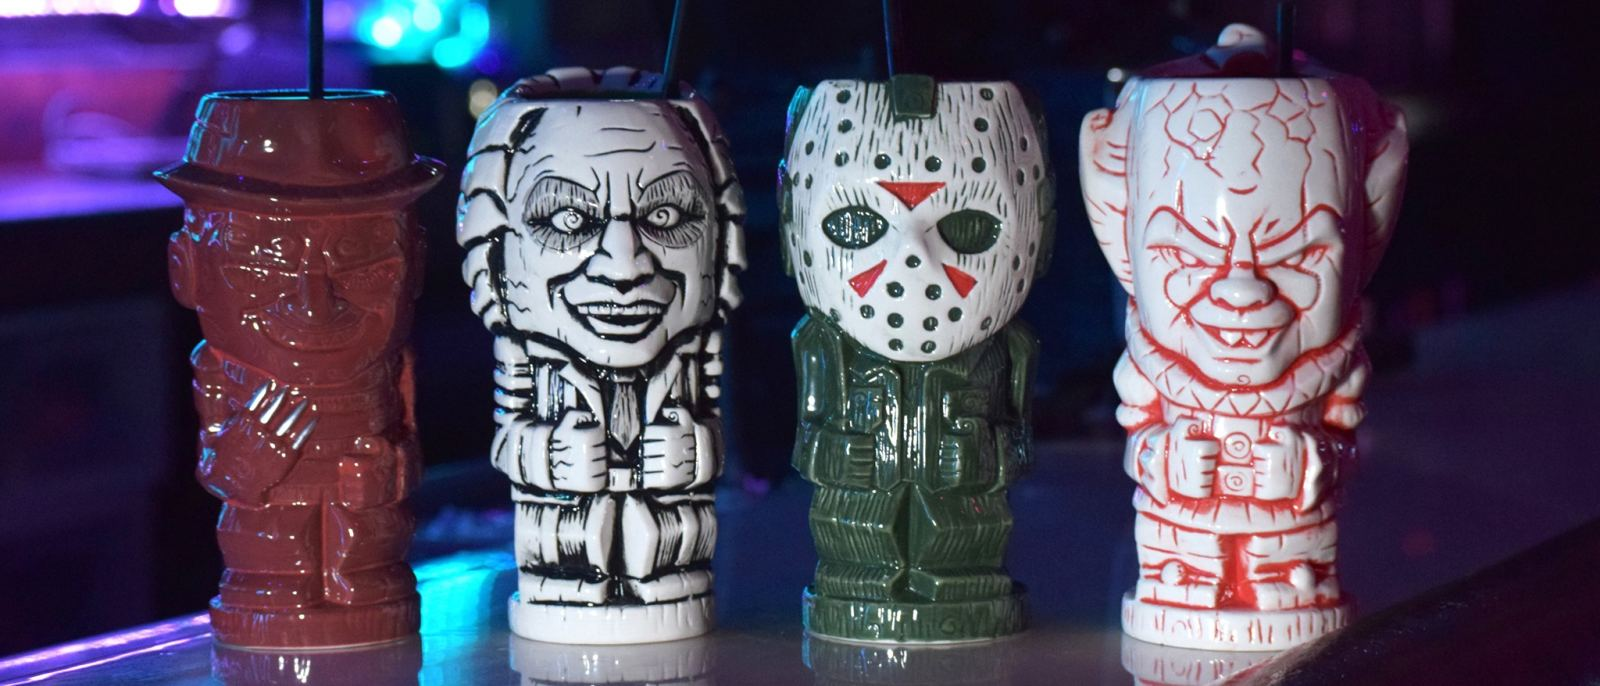 Spooky Tiki Night at Scum & Villainy Cantina